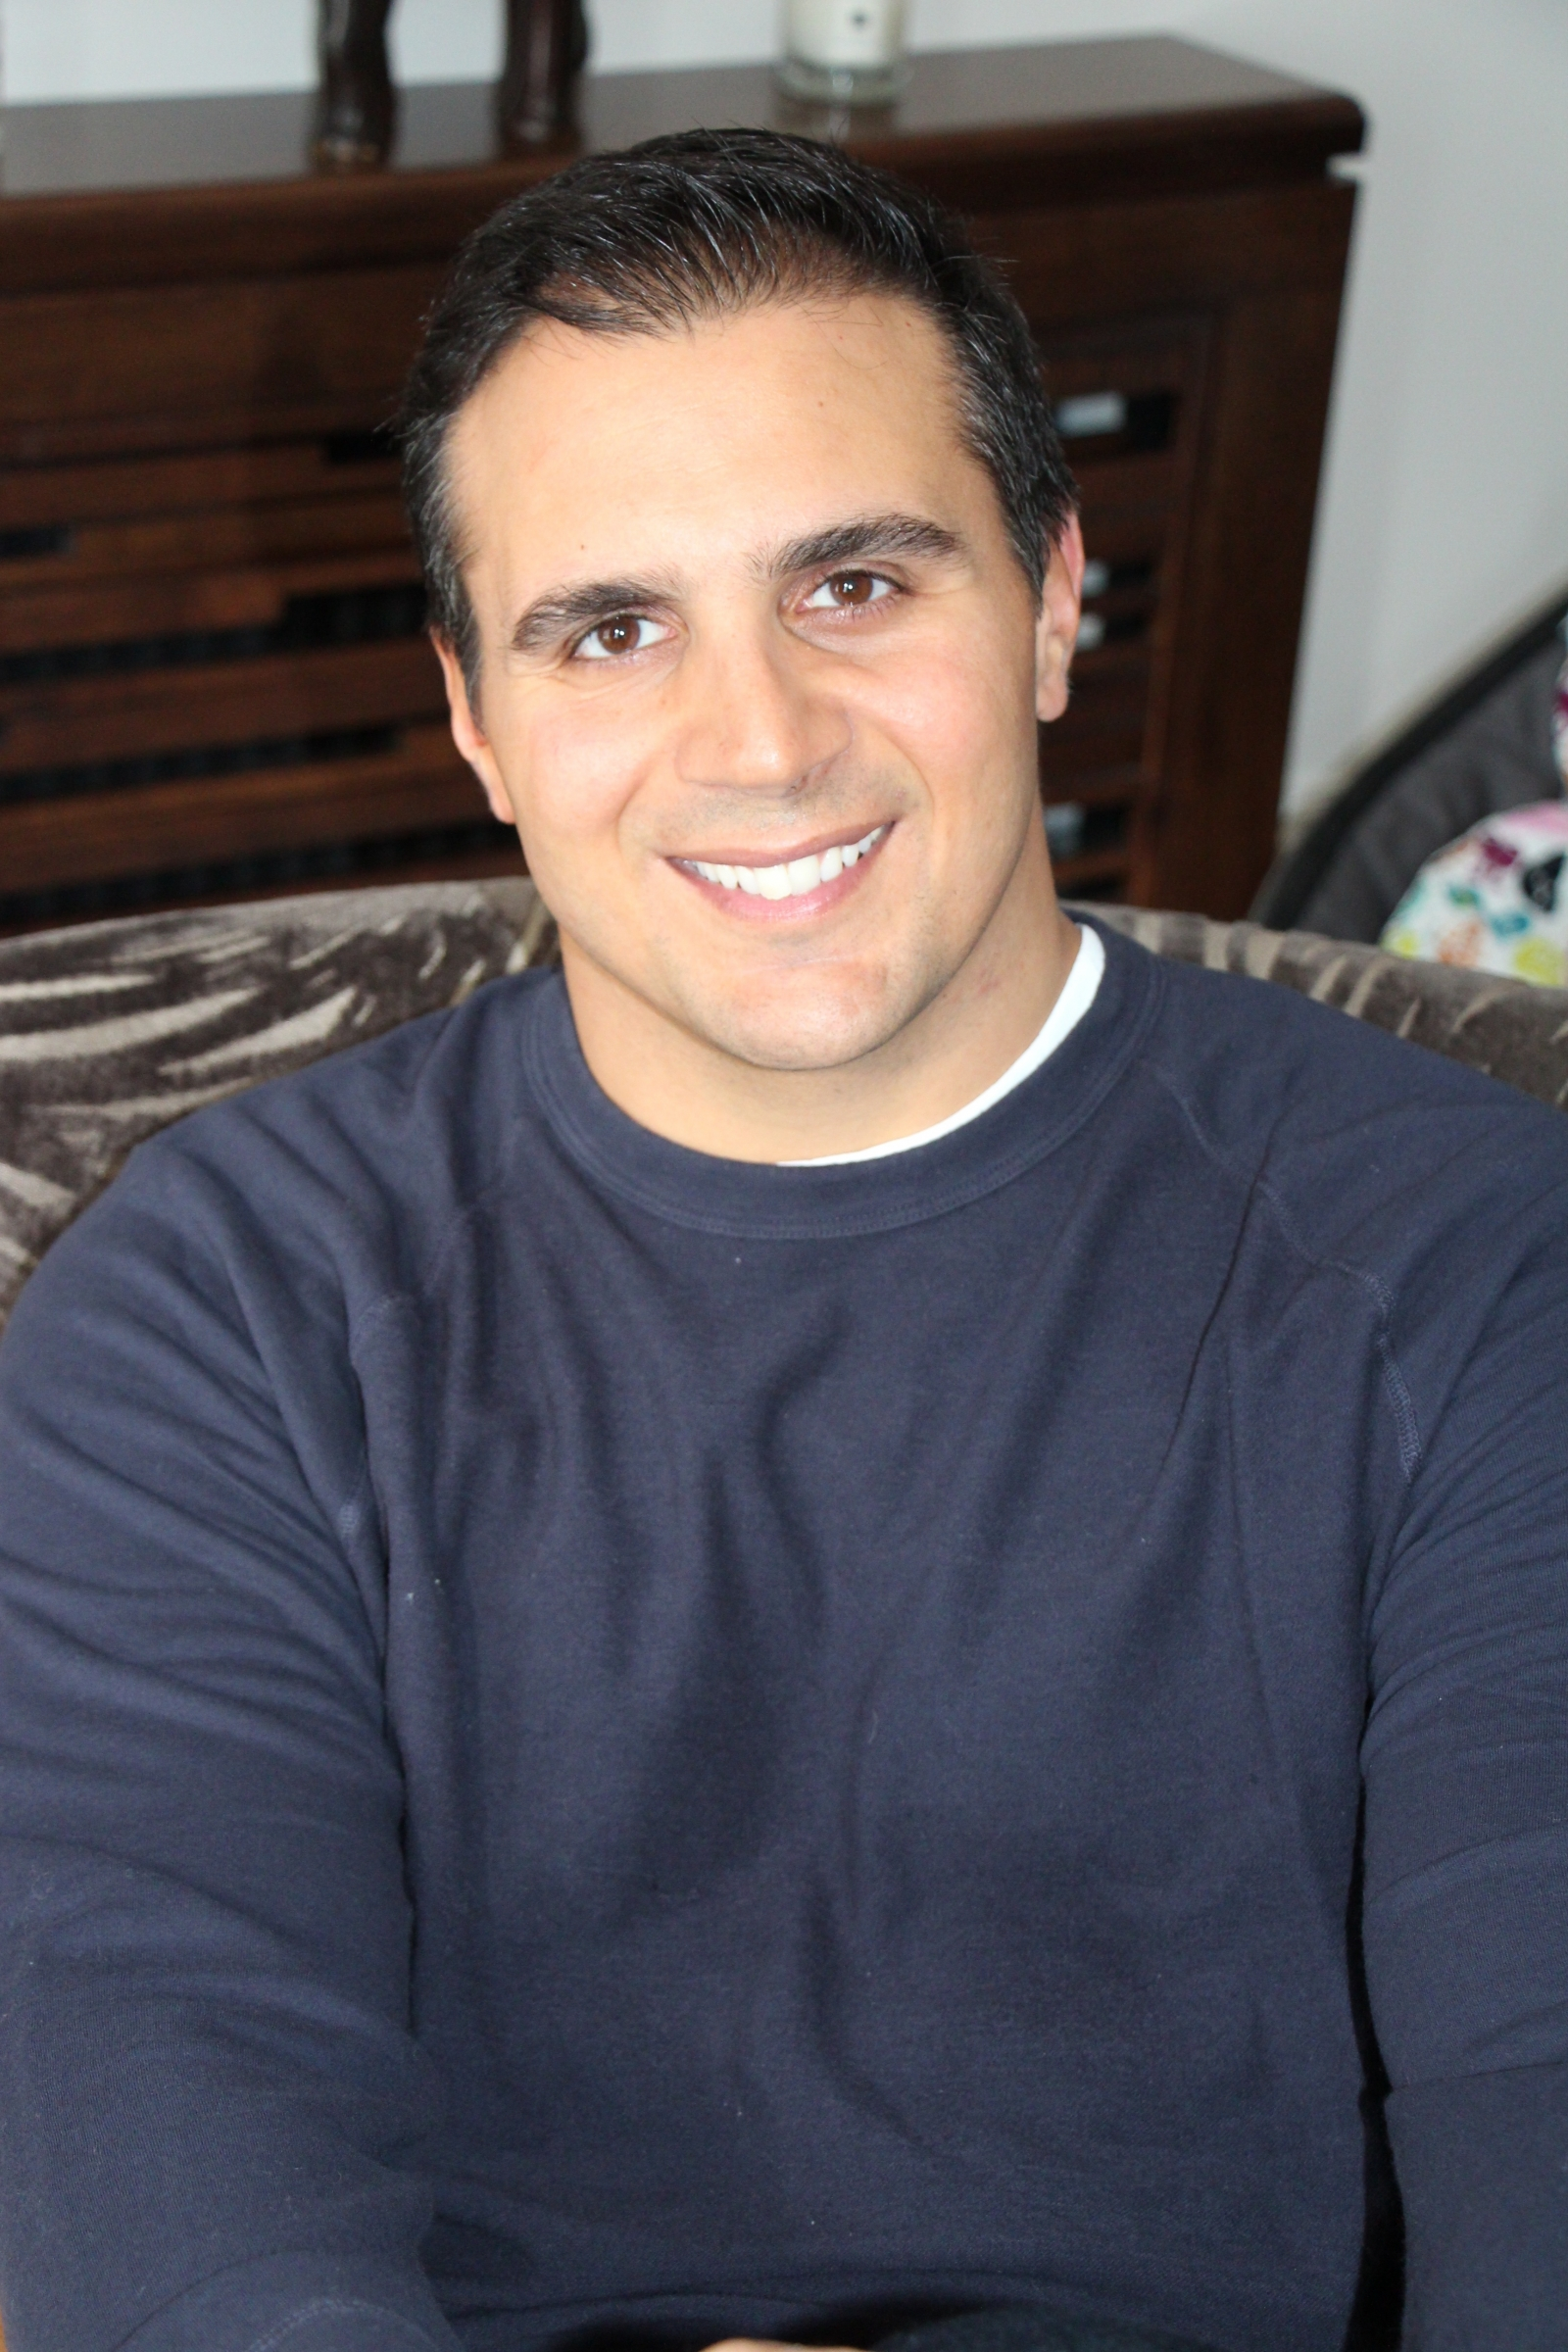 David Elghanayan